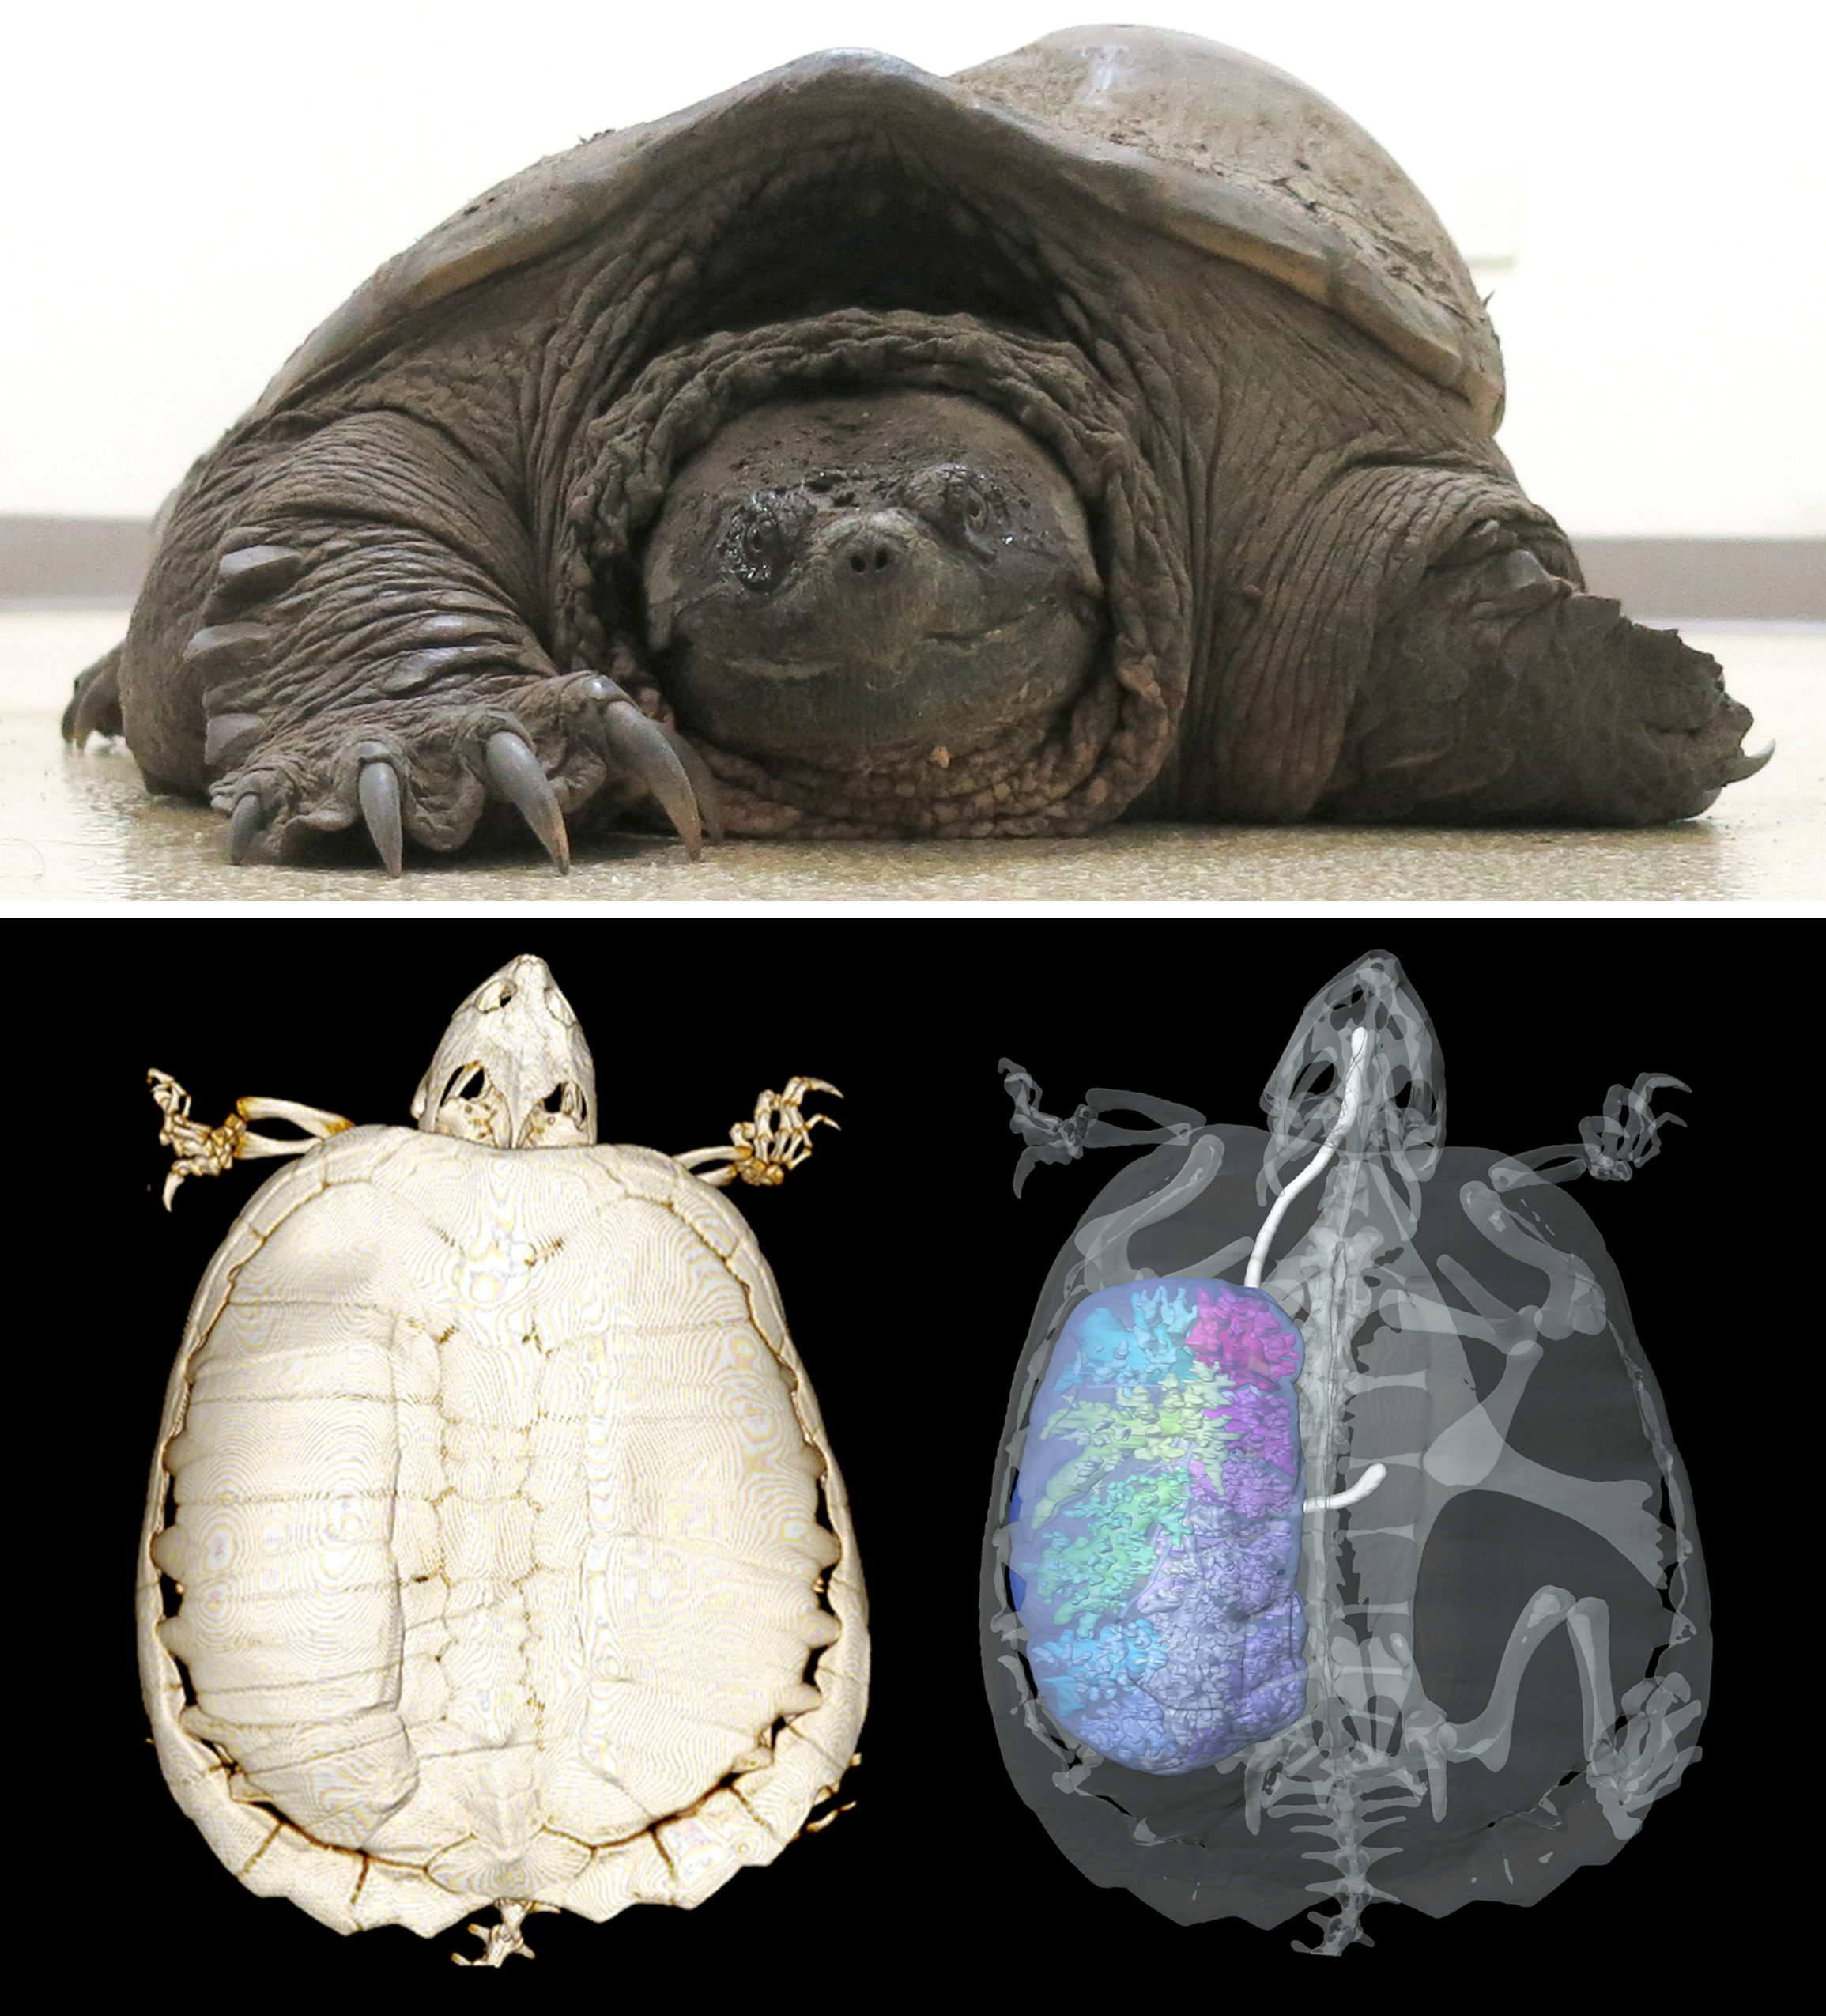 Turtles and technology advance understanding of lung abnormality